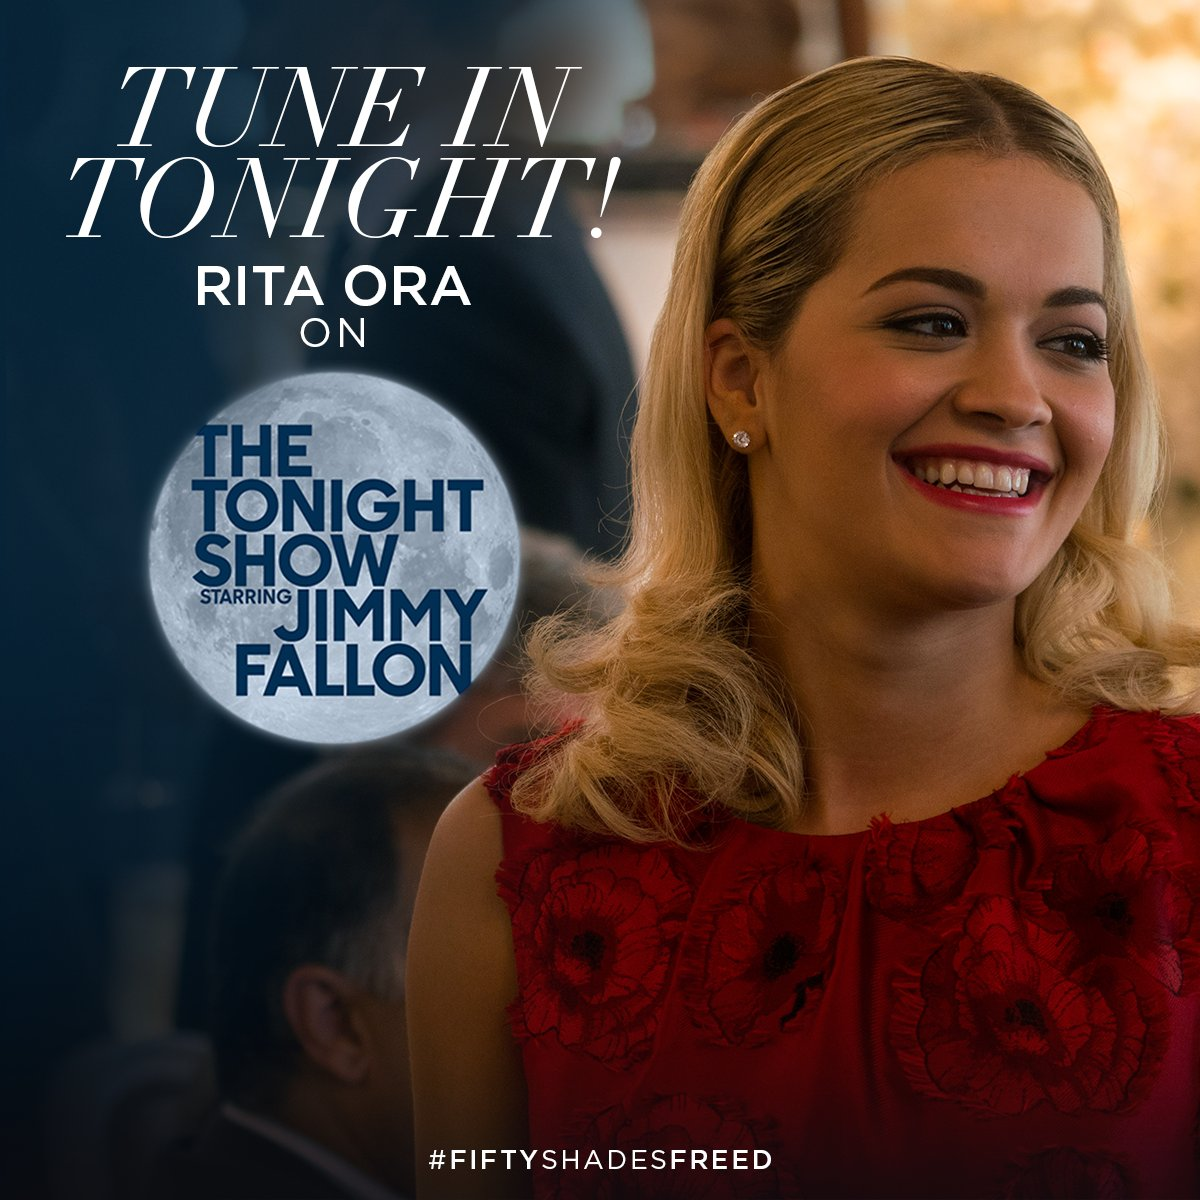 RT @FiftyShades: Don't miss @RitaOra perform #ForYou on @FallonTonight at 11:35|10:35c. #FiftyShadesFreed https://t.co/S80VXhI1Ah